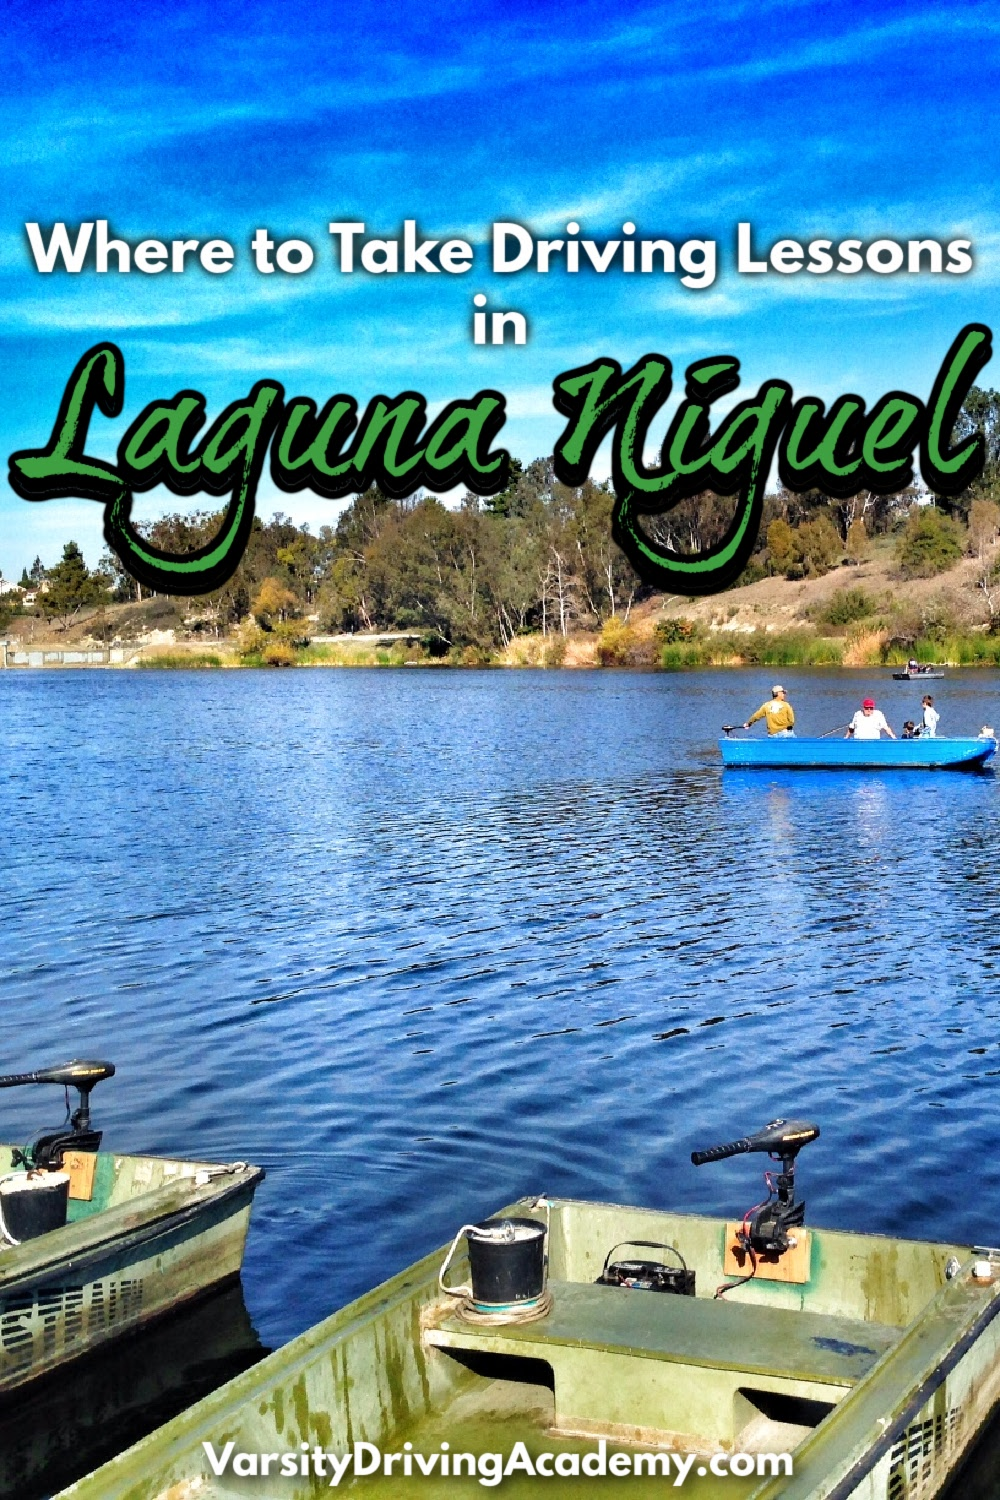 Varsity Driving Academy offers the best Laguna Niguel driving lessons for teens and adults who want to learn how to drive.